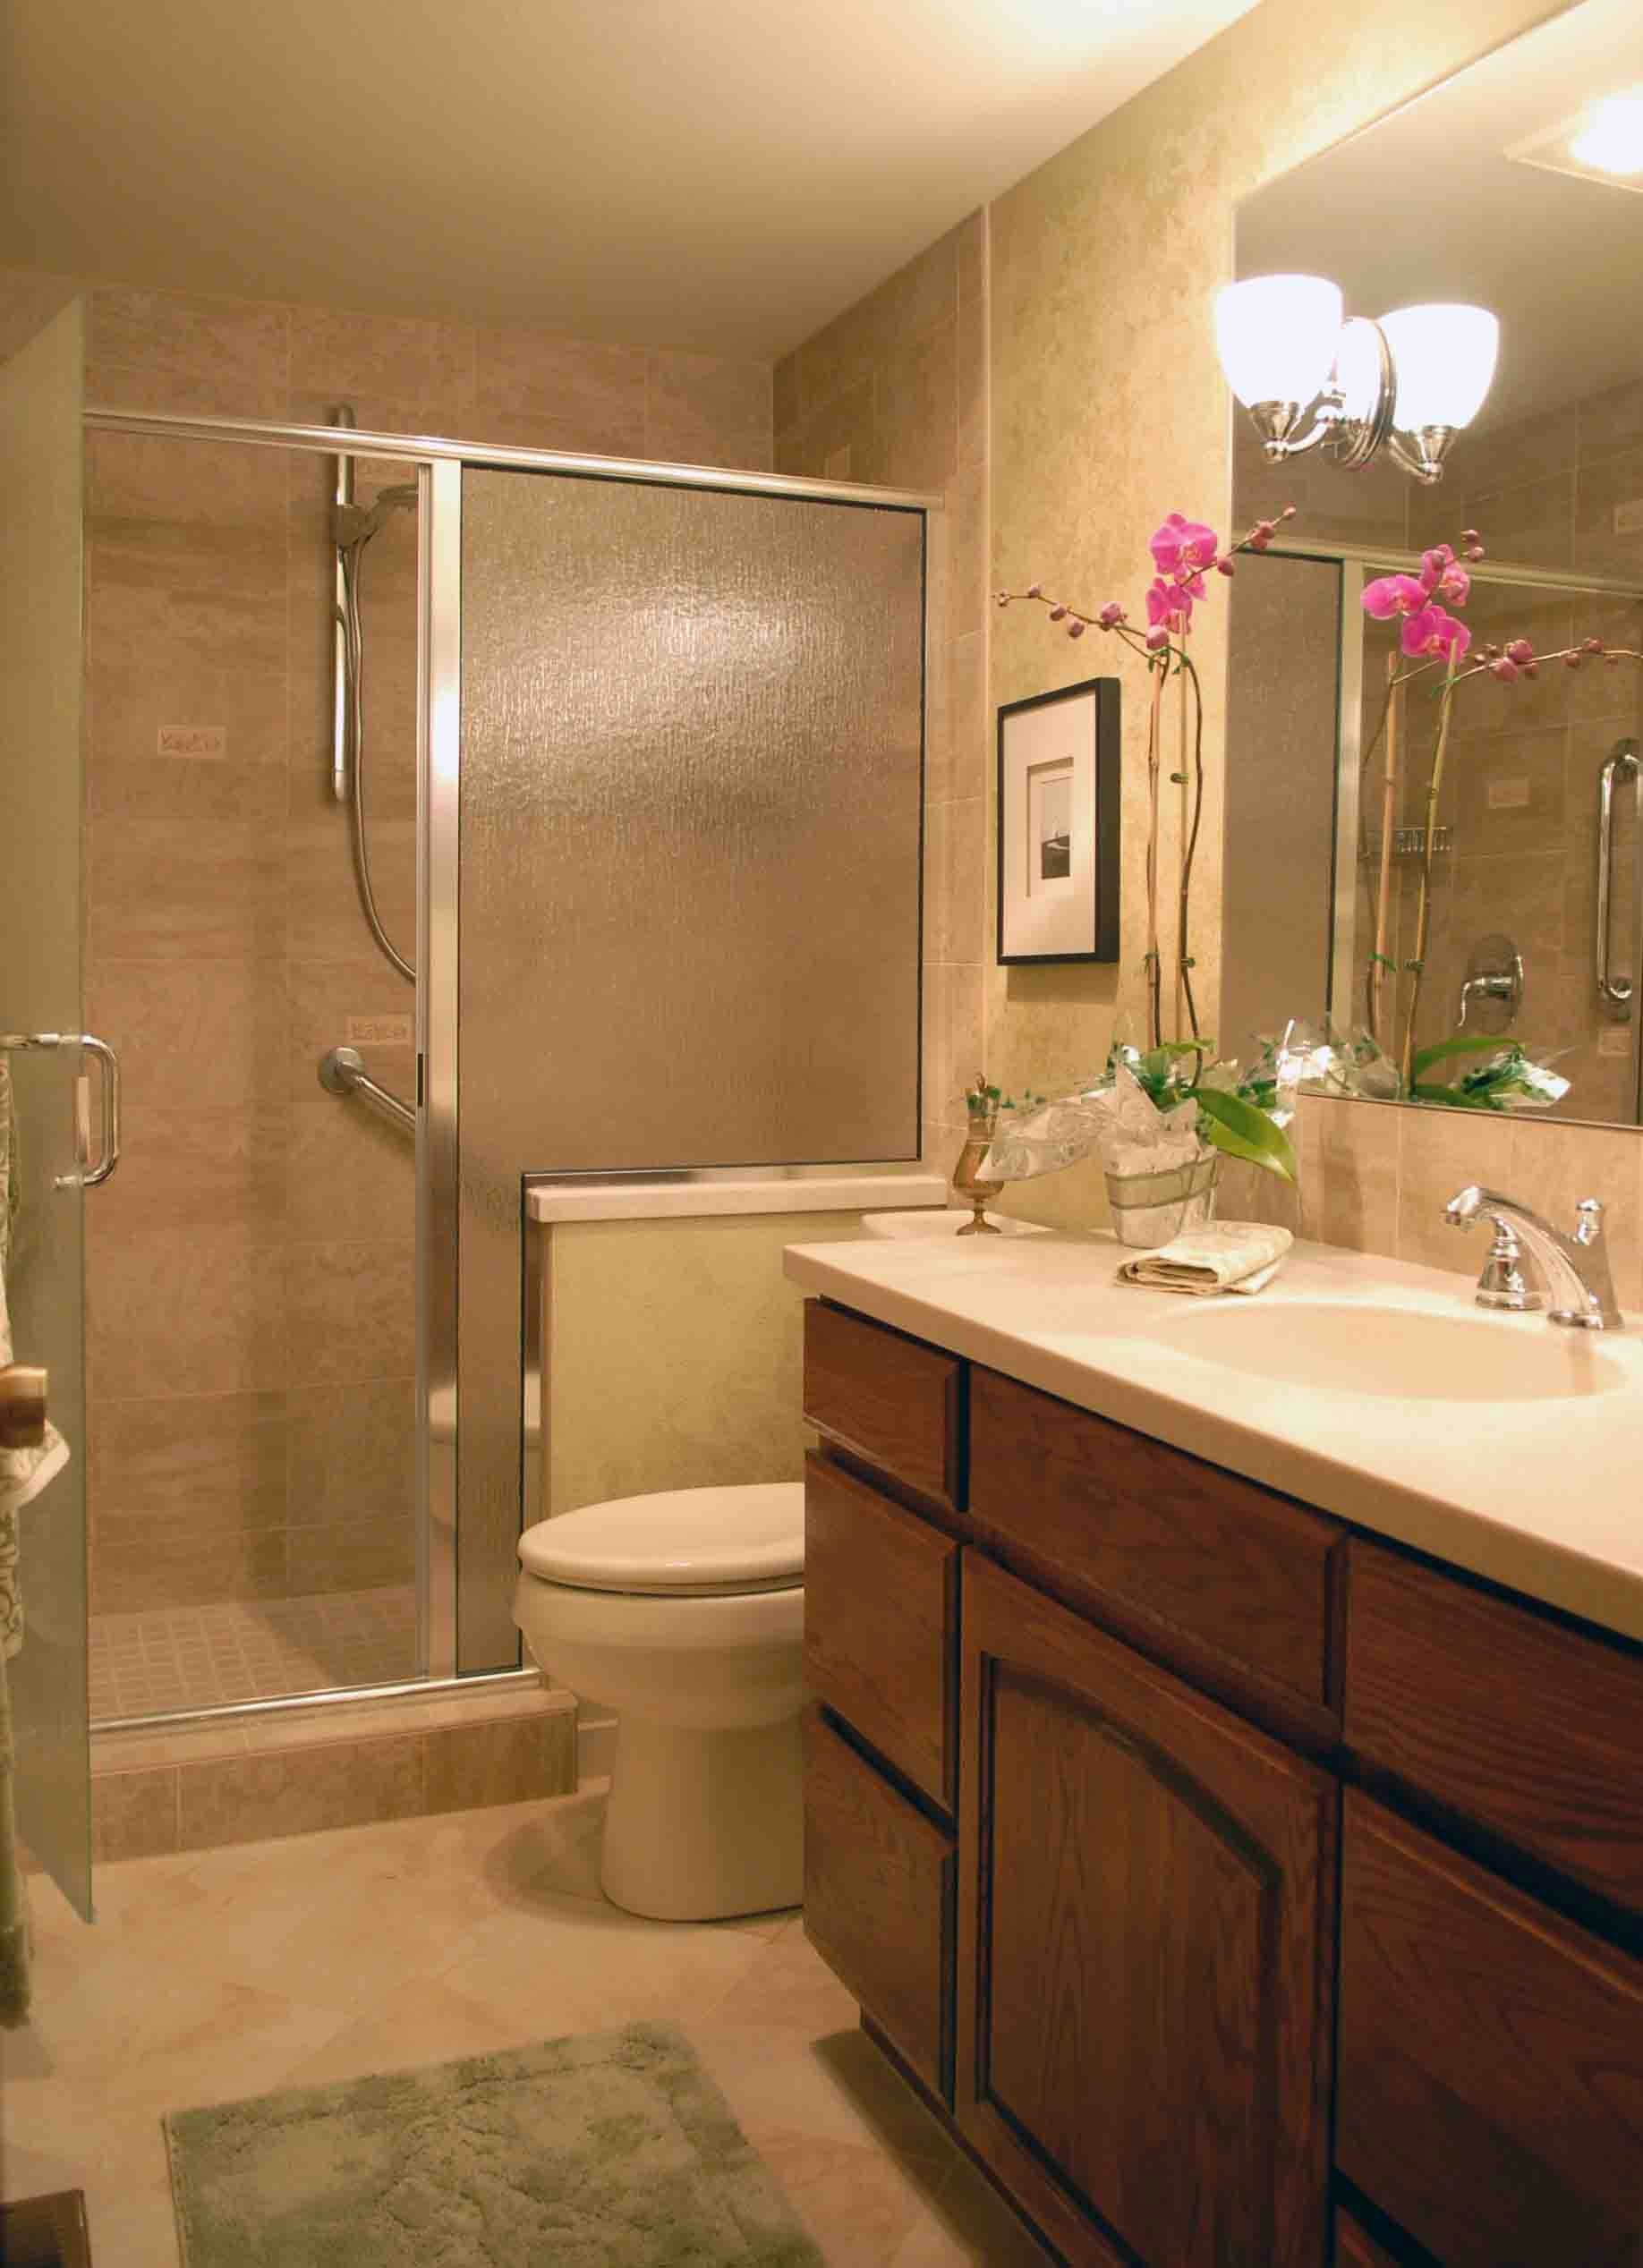 Remodeling Ideas For Small Bathrooms New Small Bathroom Remodel Ideas Concept Bathroom Design Ideas